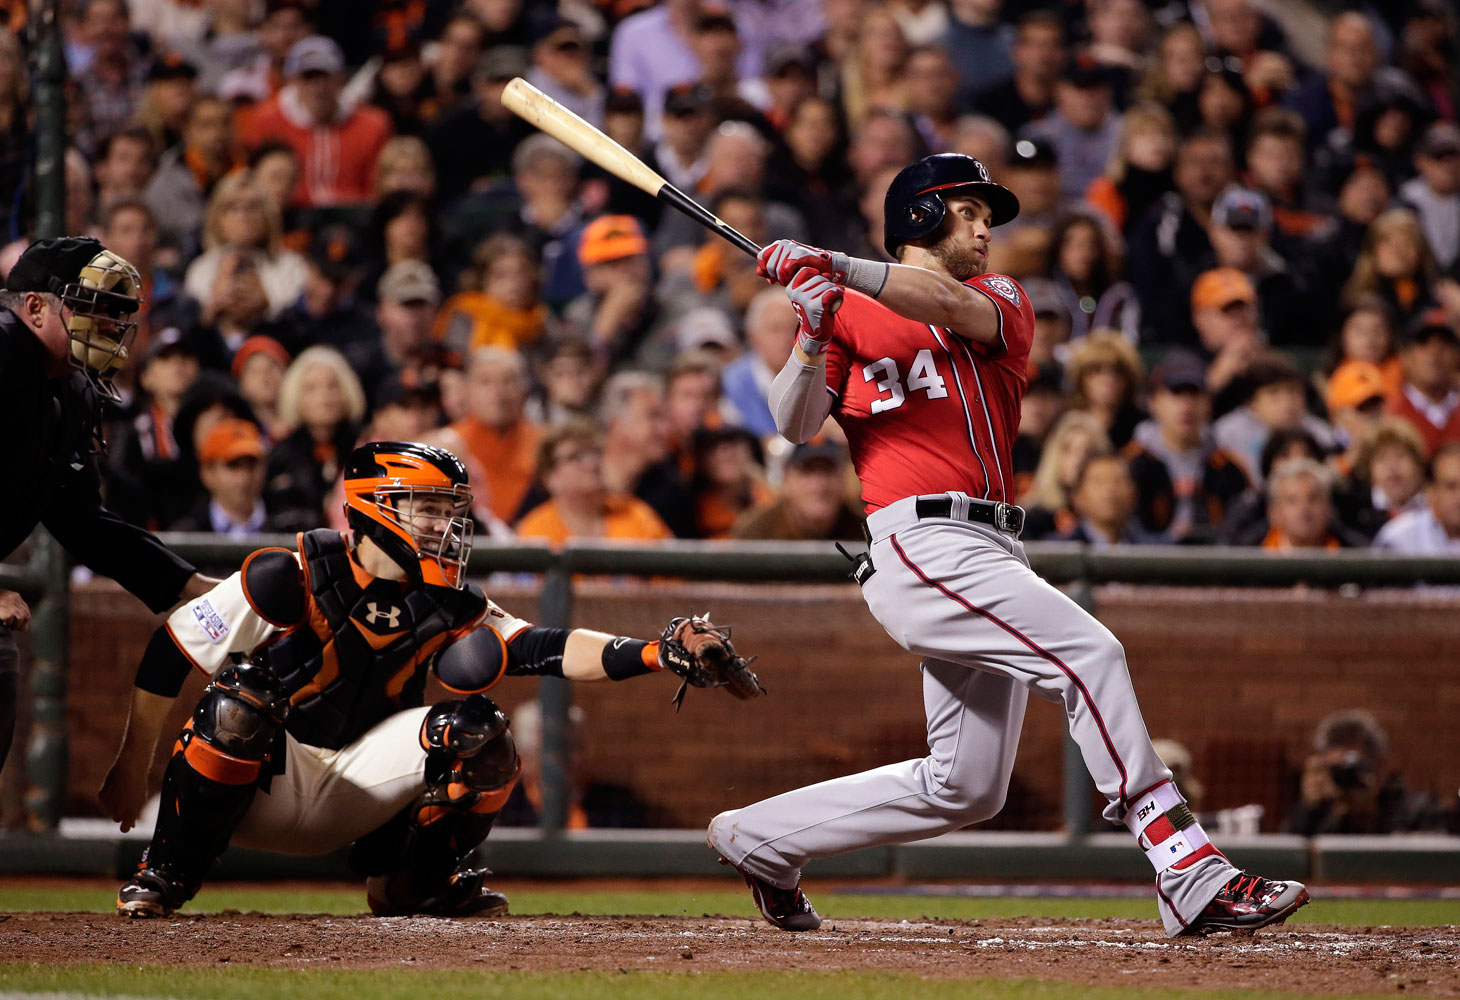 The Nationals' Bryce Harper quandary